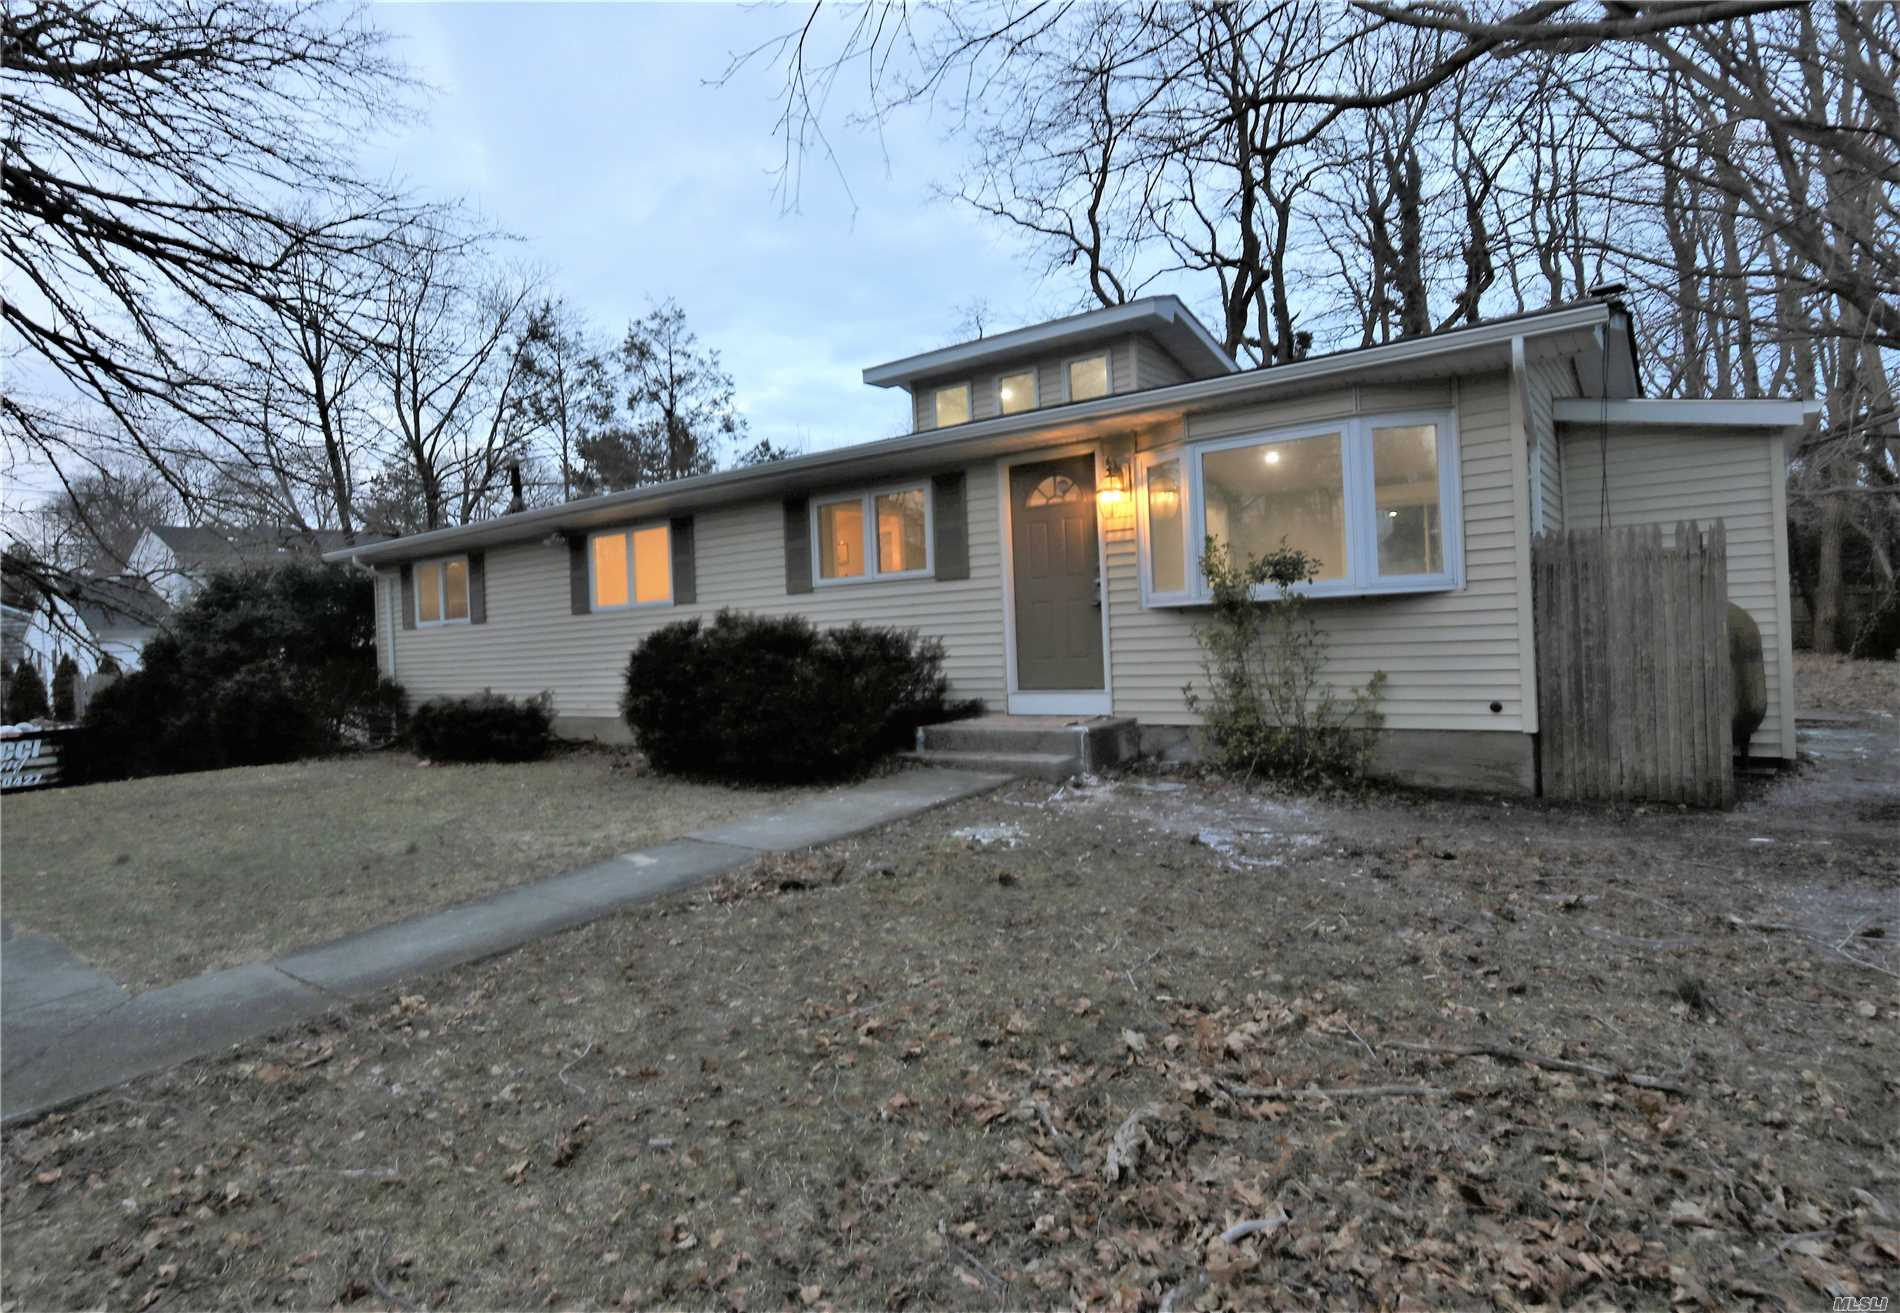 240 N Country Rd - Miller Place, New York